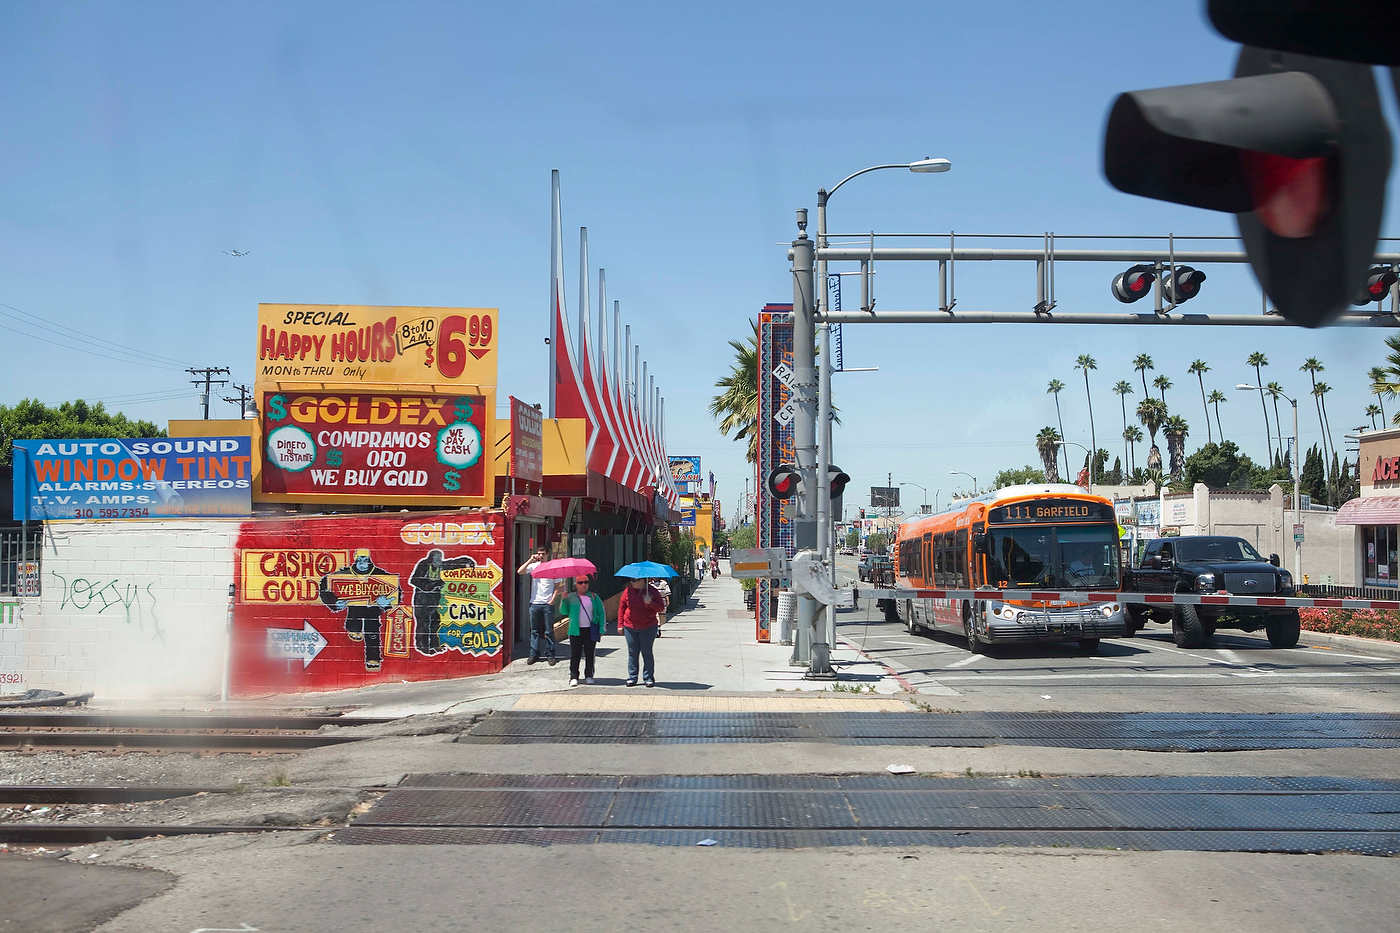 Metro Green Line, south of downtown Los Angeles, where historically Black neighborhoods are becoming Latino.